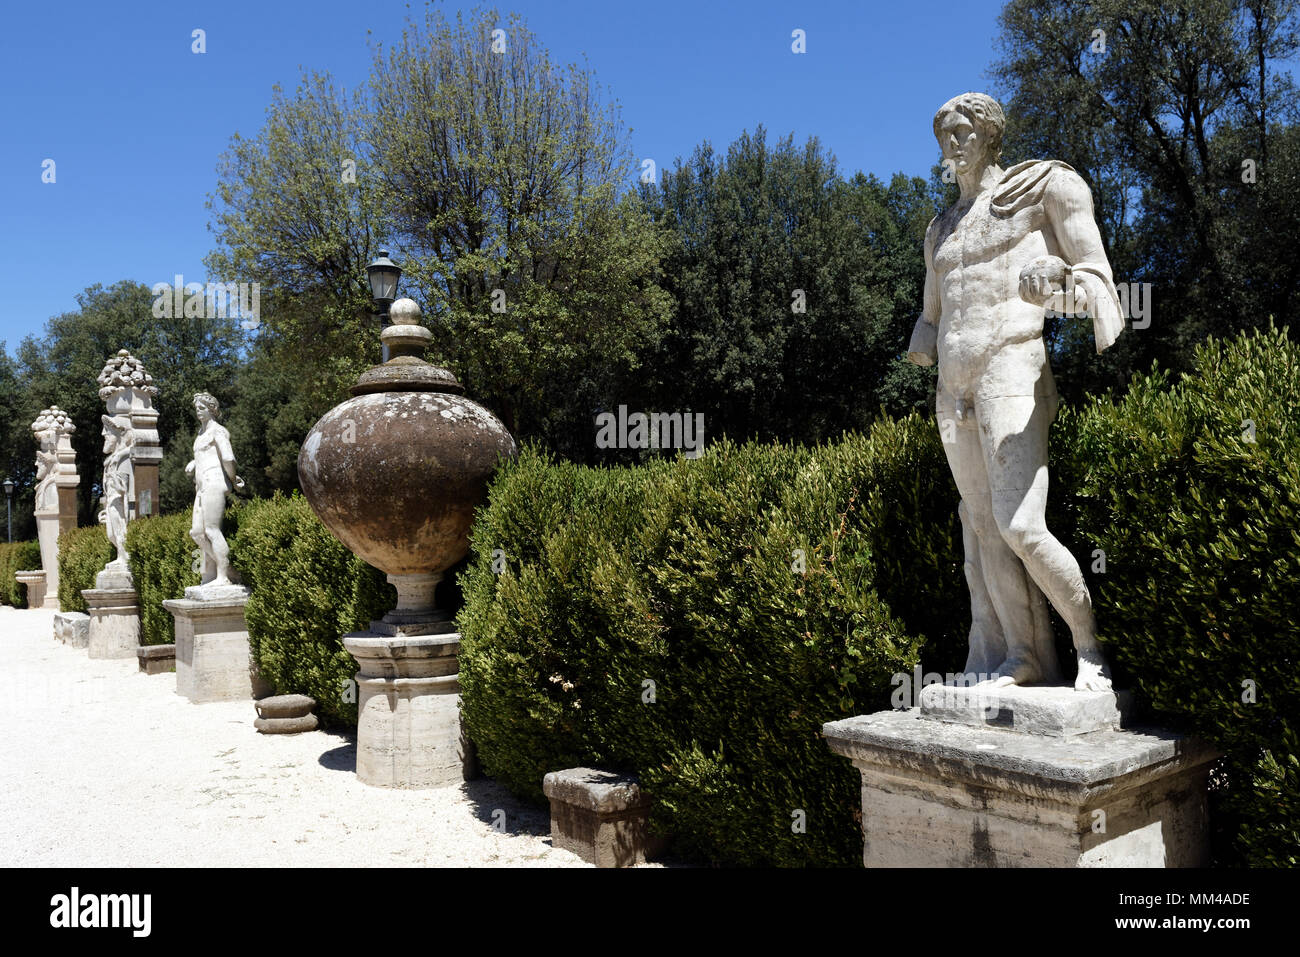 Some Of The Statues And Vases On Decorative Pedestals Decorating The Rear  Garden Of The Galleria Borghese. Rome. Italy. The 17th Century Casino Nobil